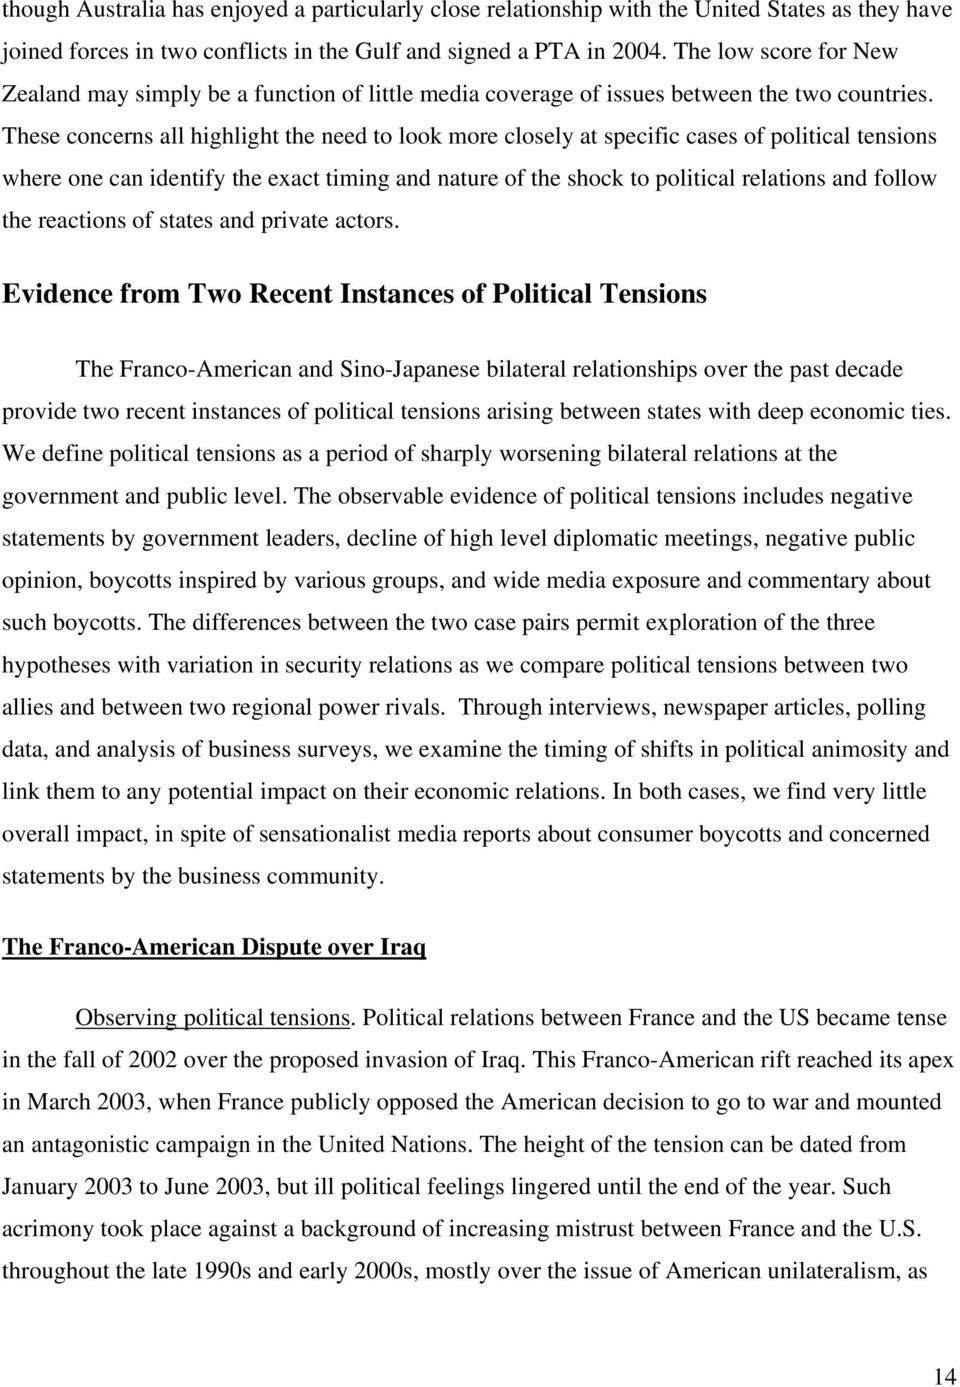 These concerns all highlight the need to look more closely at specific cases of political tensions where one can identify the exact timing and nature of the shock to political relations and follow